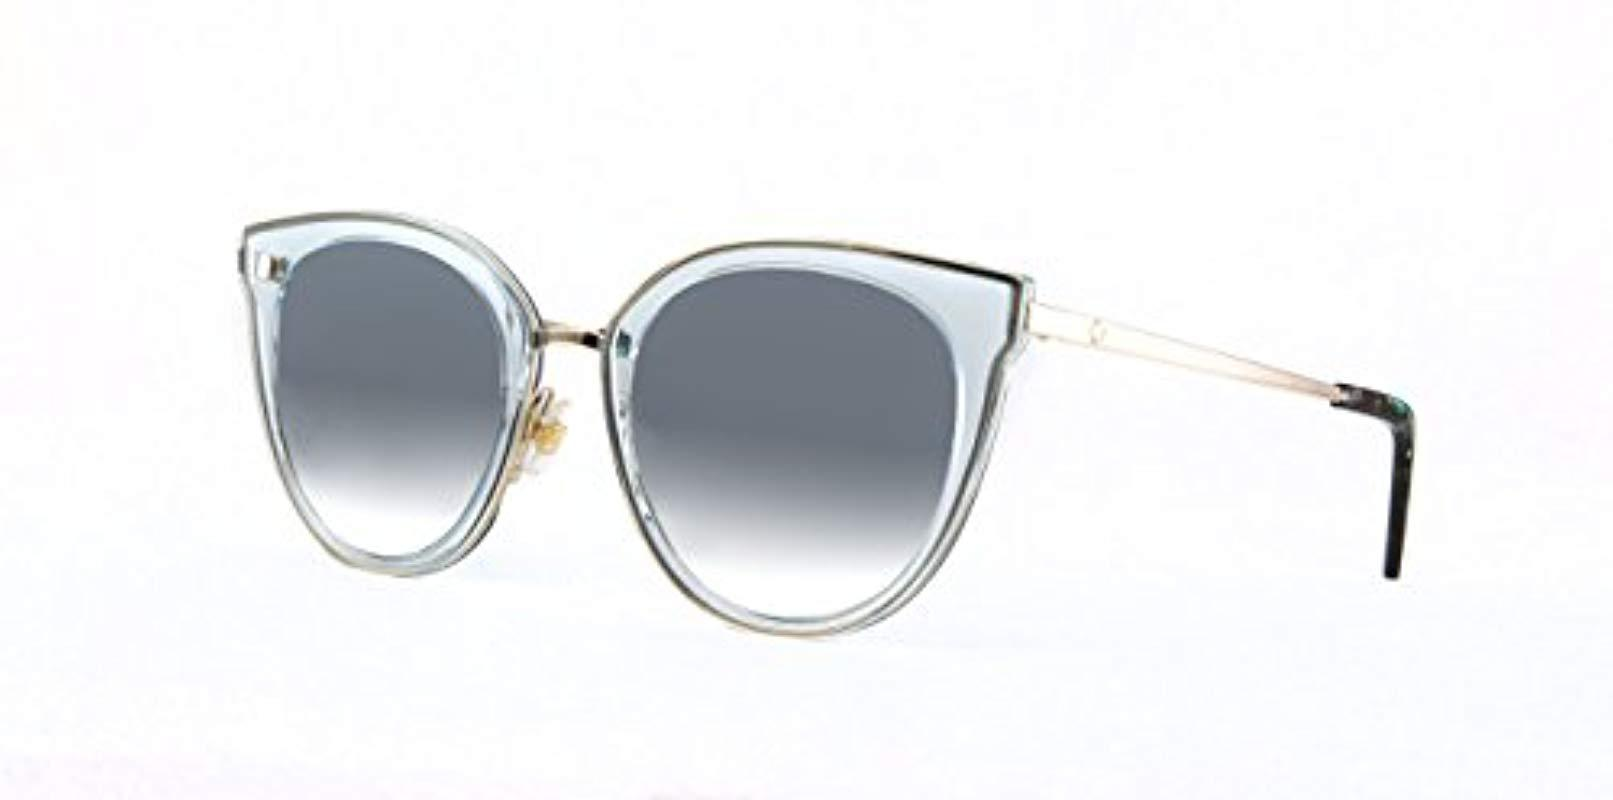 e4a10c19c2 Lyst - Kate Spade Kate Spade Jazzlyn s Round Sunglasses